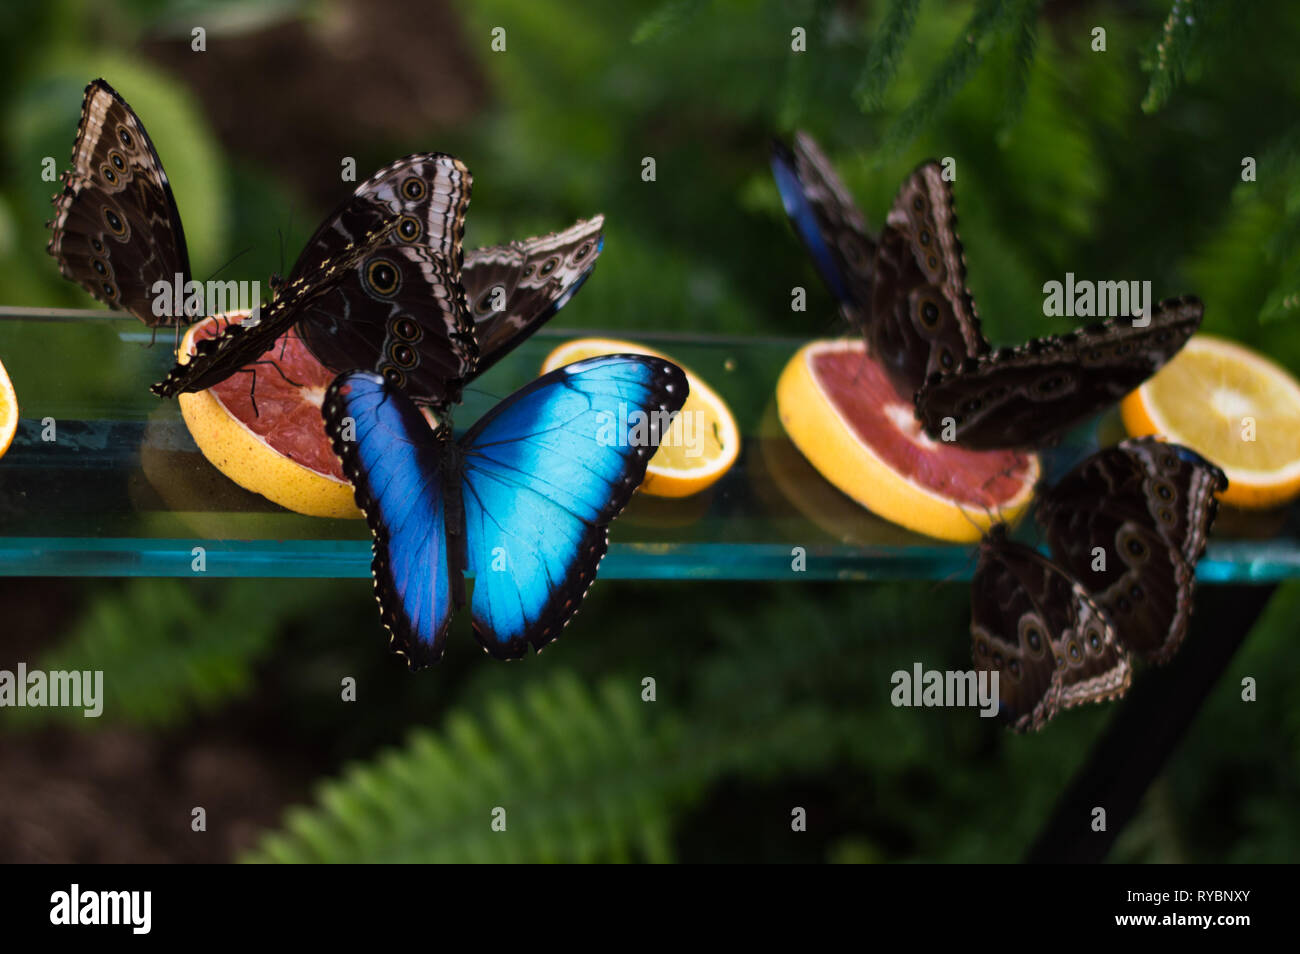 Dinner time for butterflies - Stock Image